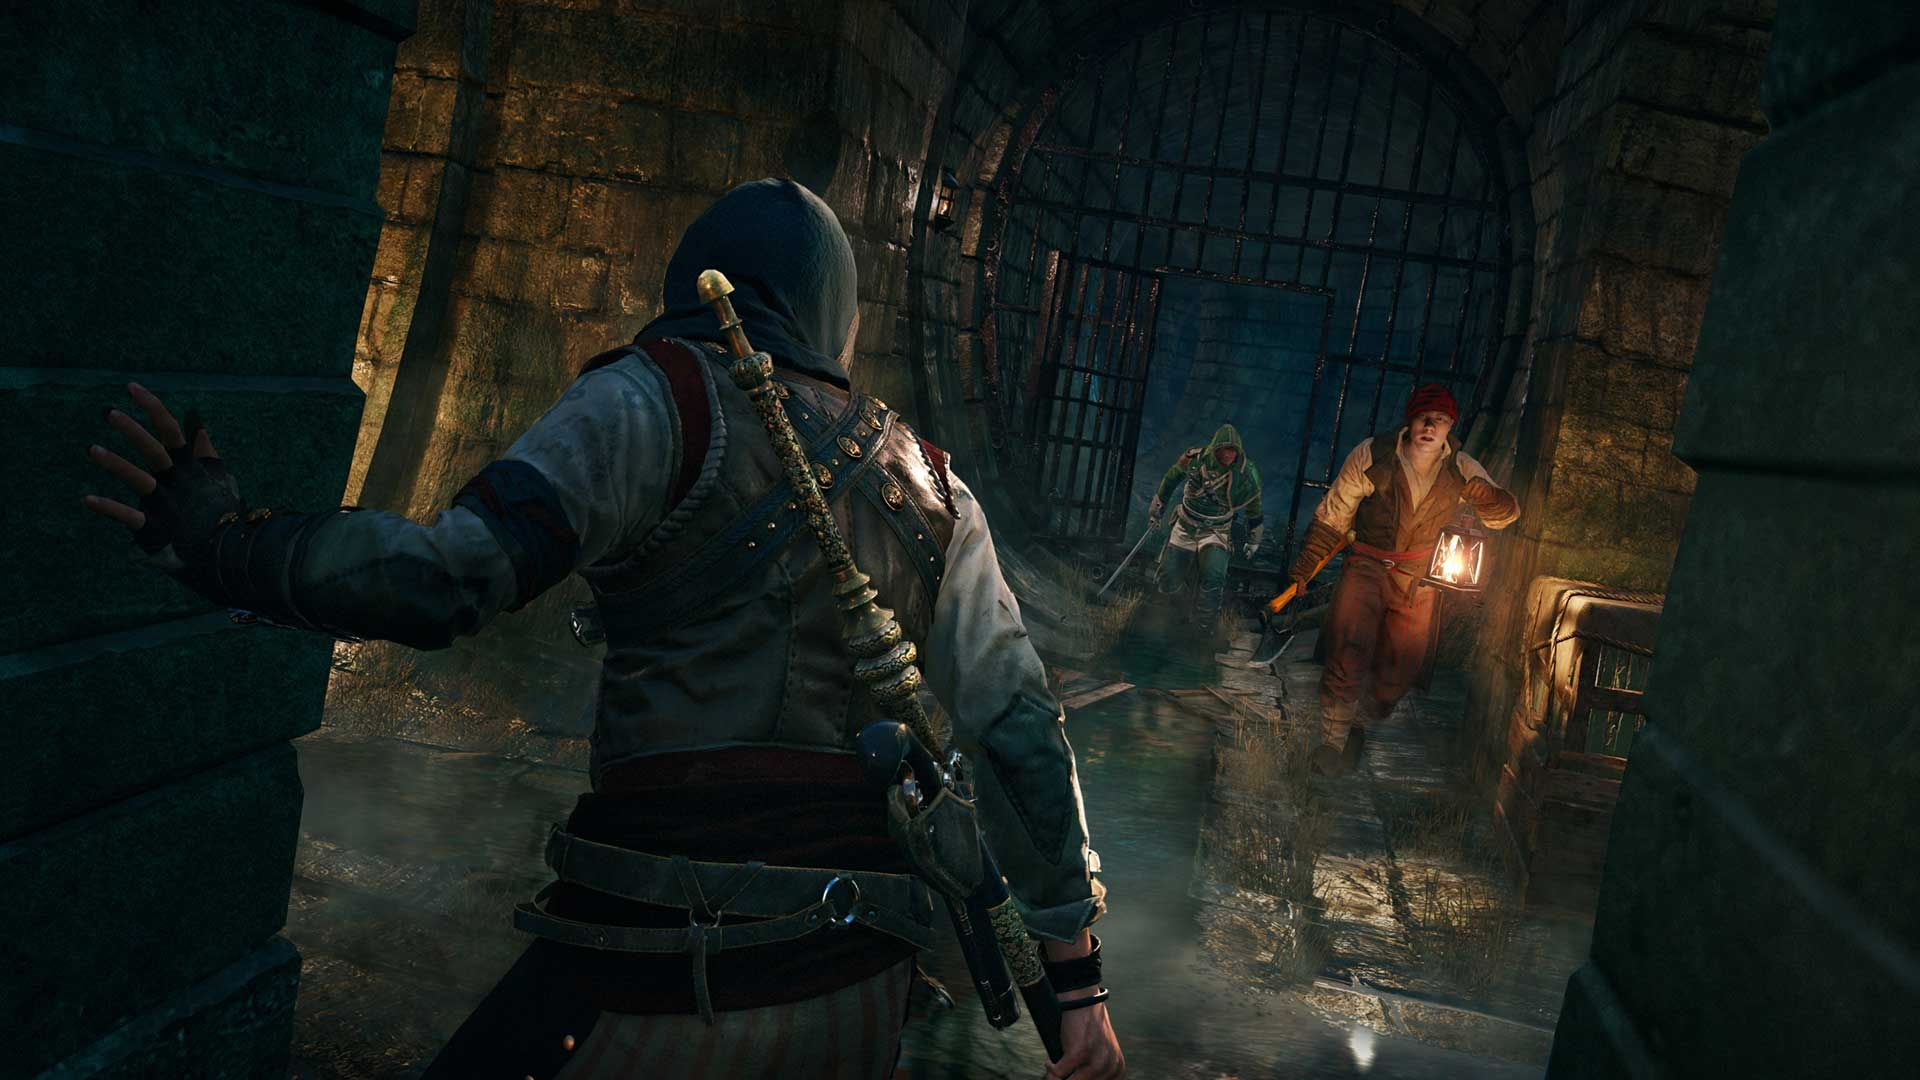 Pin by HNGN on Entertainment | Assassin's creed hd, Assassins creed